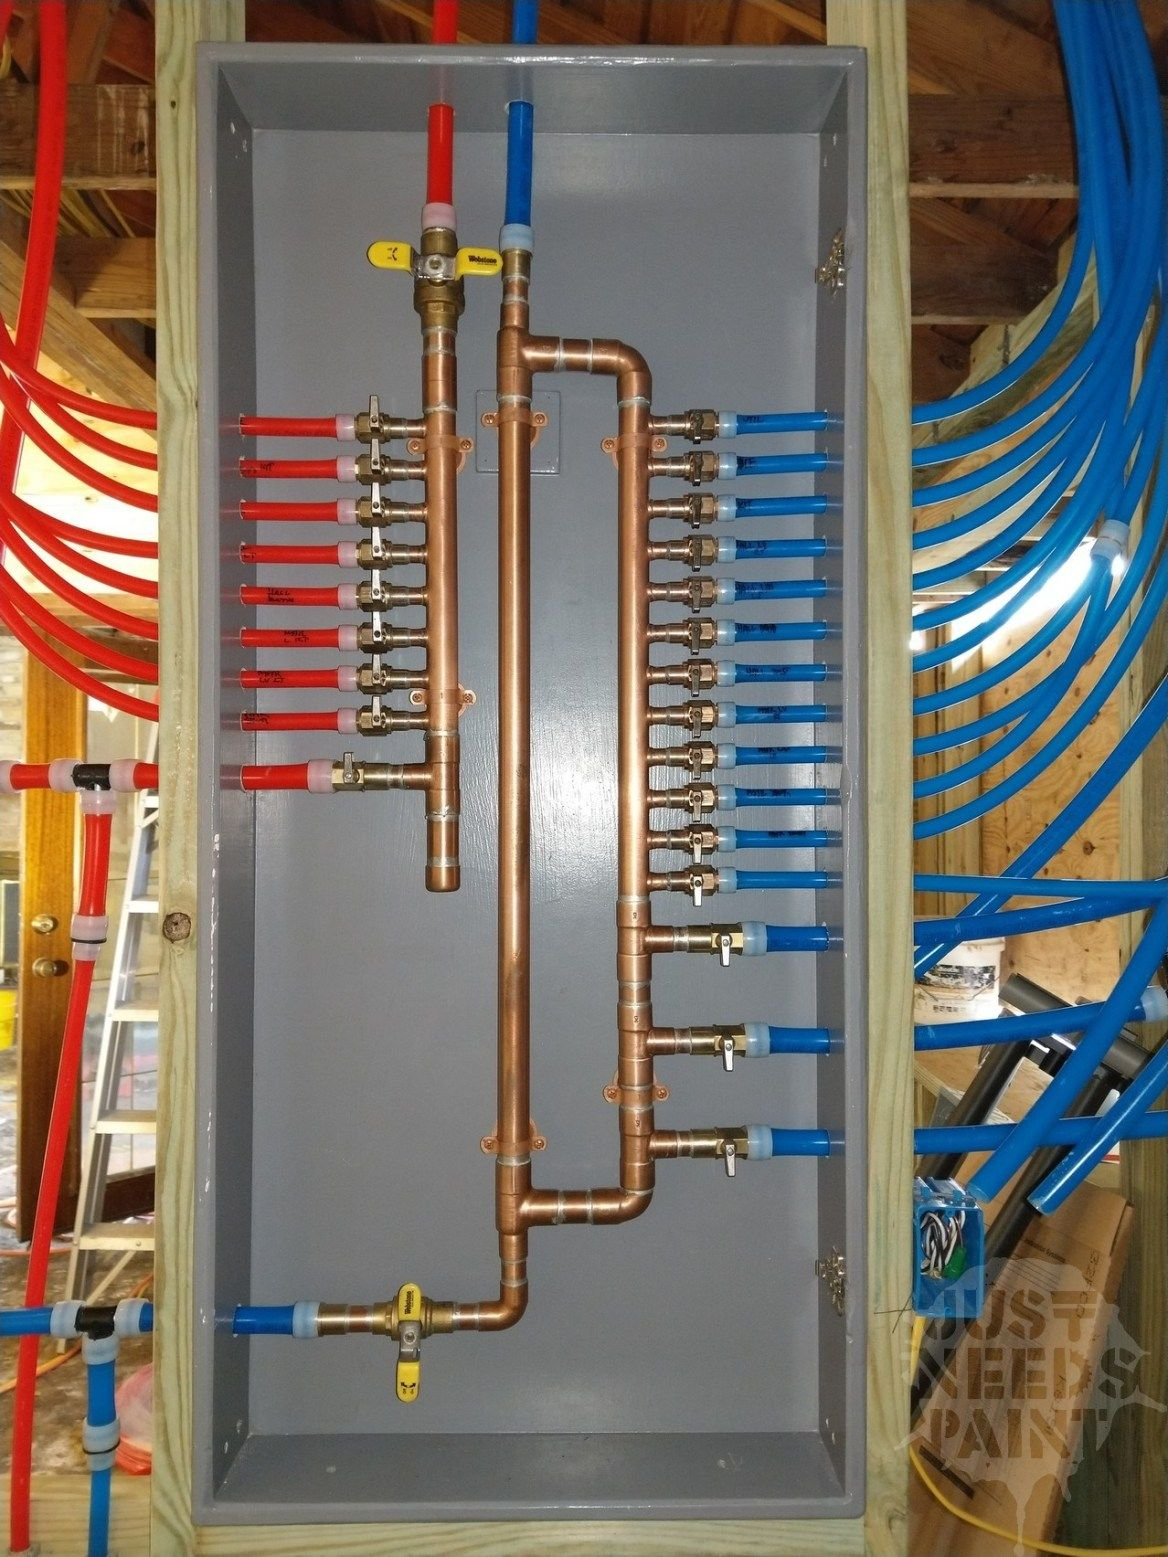 How To Build A Pex Manifold A Step By Step Guide Just Needs Paint Pex Plumbing Diy Plumbing Home Remodeling